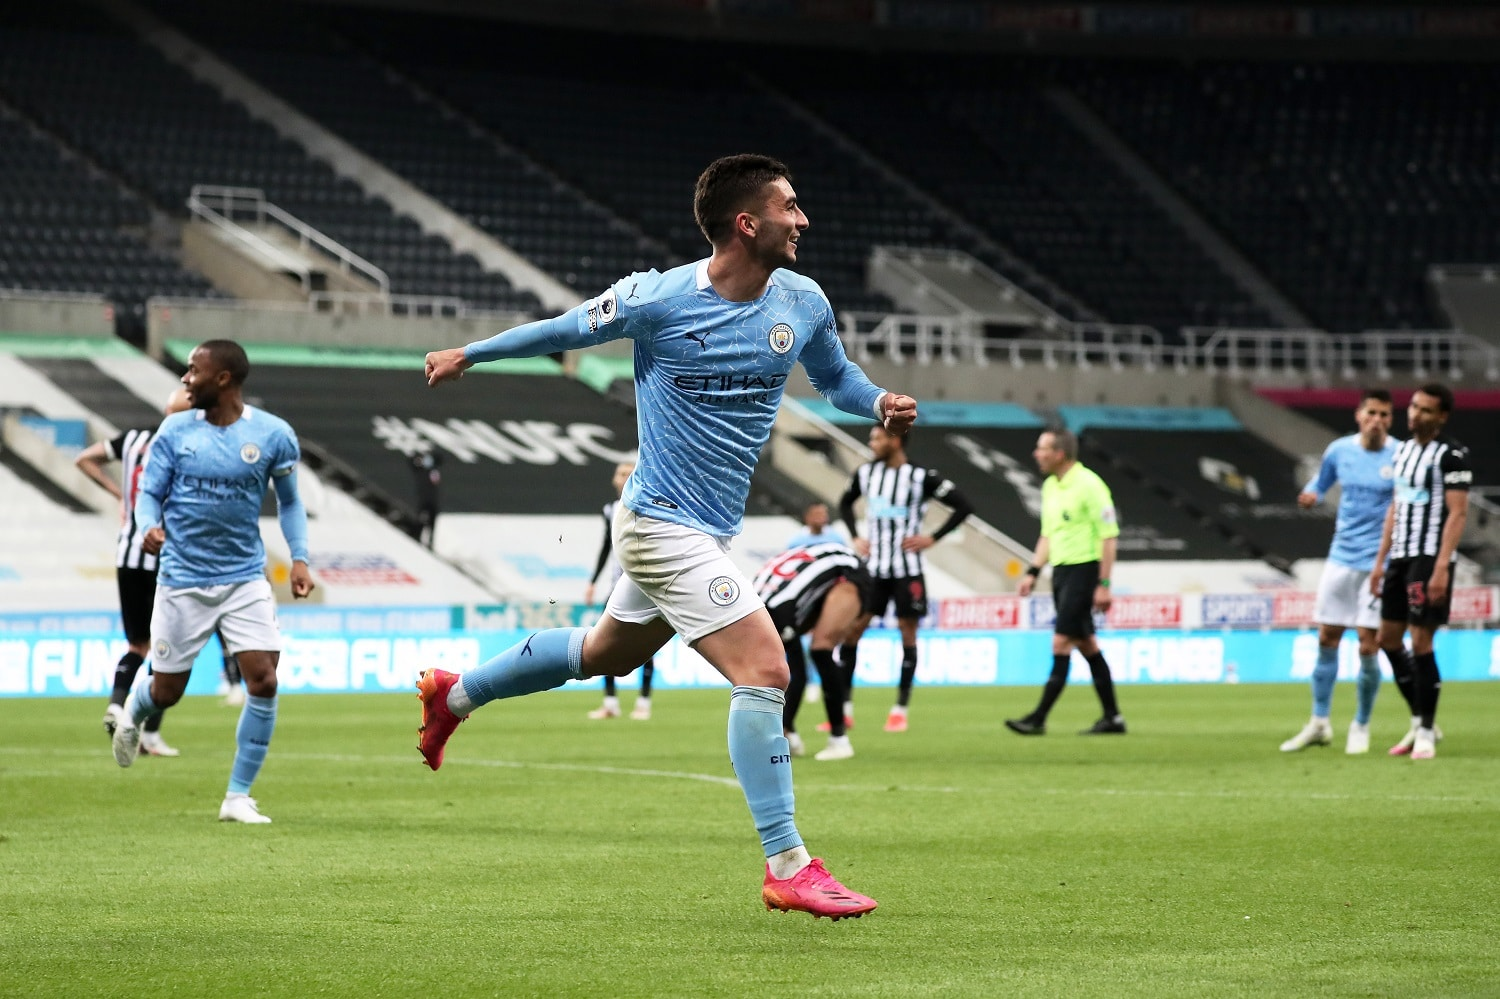 Man City Set New Record After Edging Newcastle In Seven-Goal Thriller